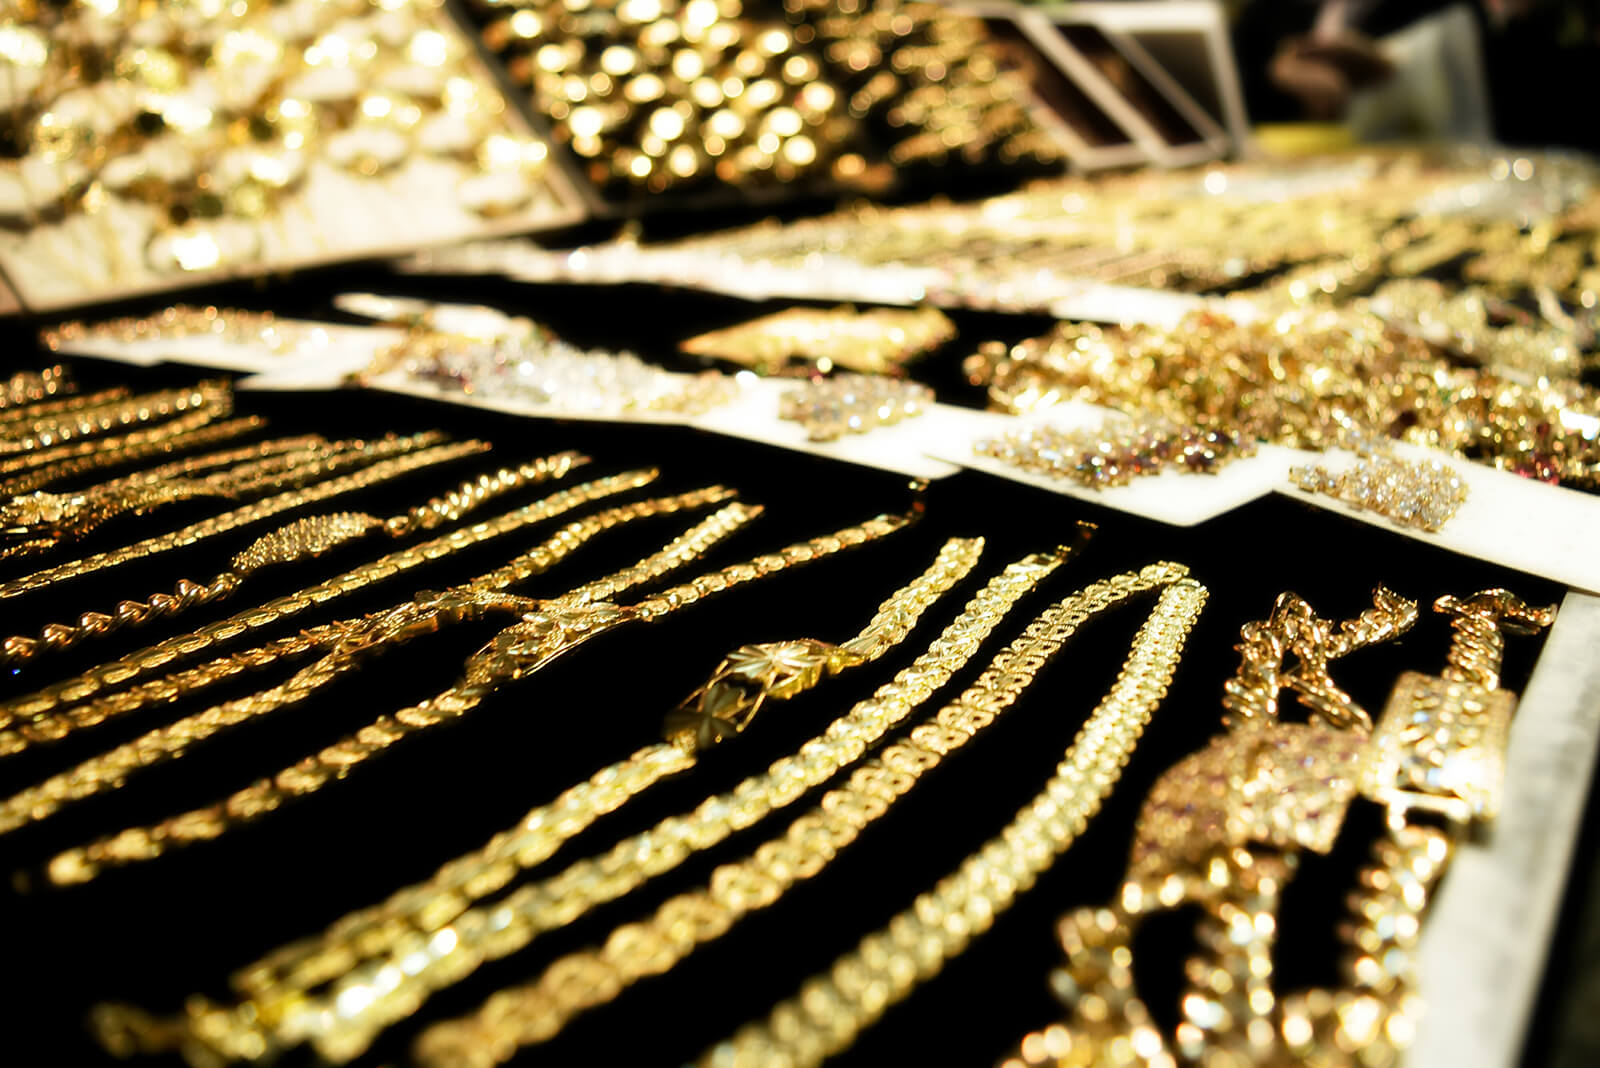 Jewelry Stores That Buy Gold: 3 Places You Can Trust | LoveToKnow